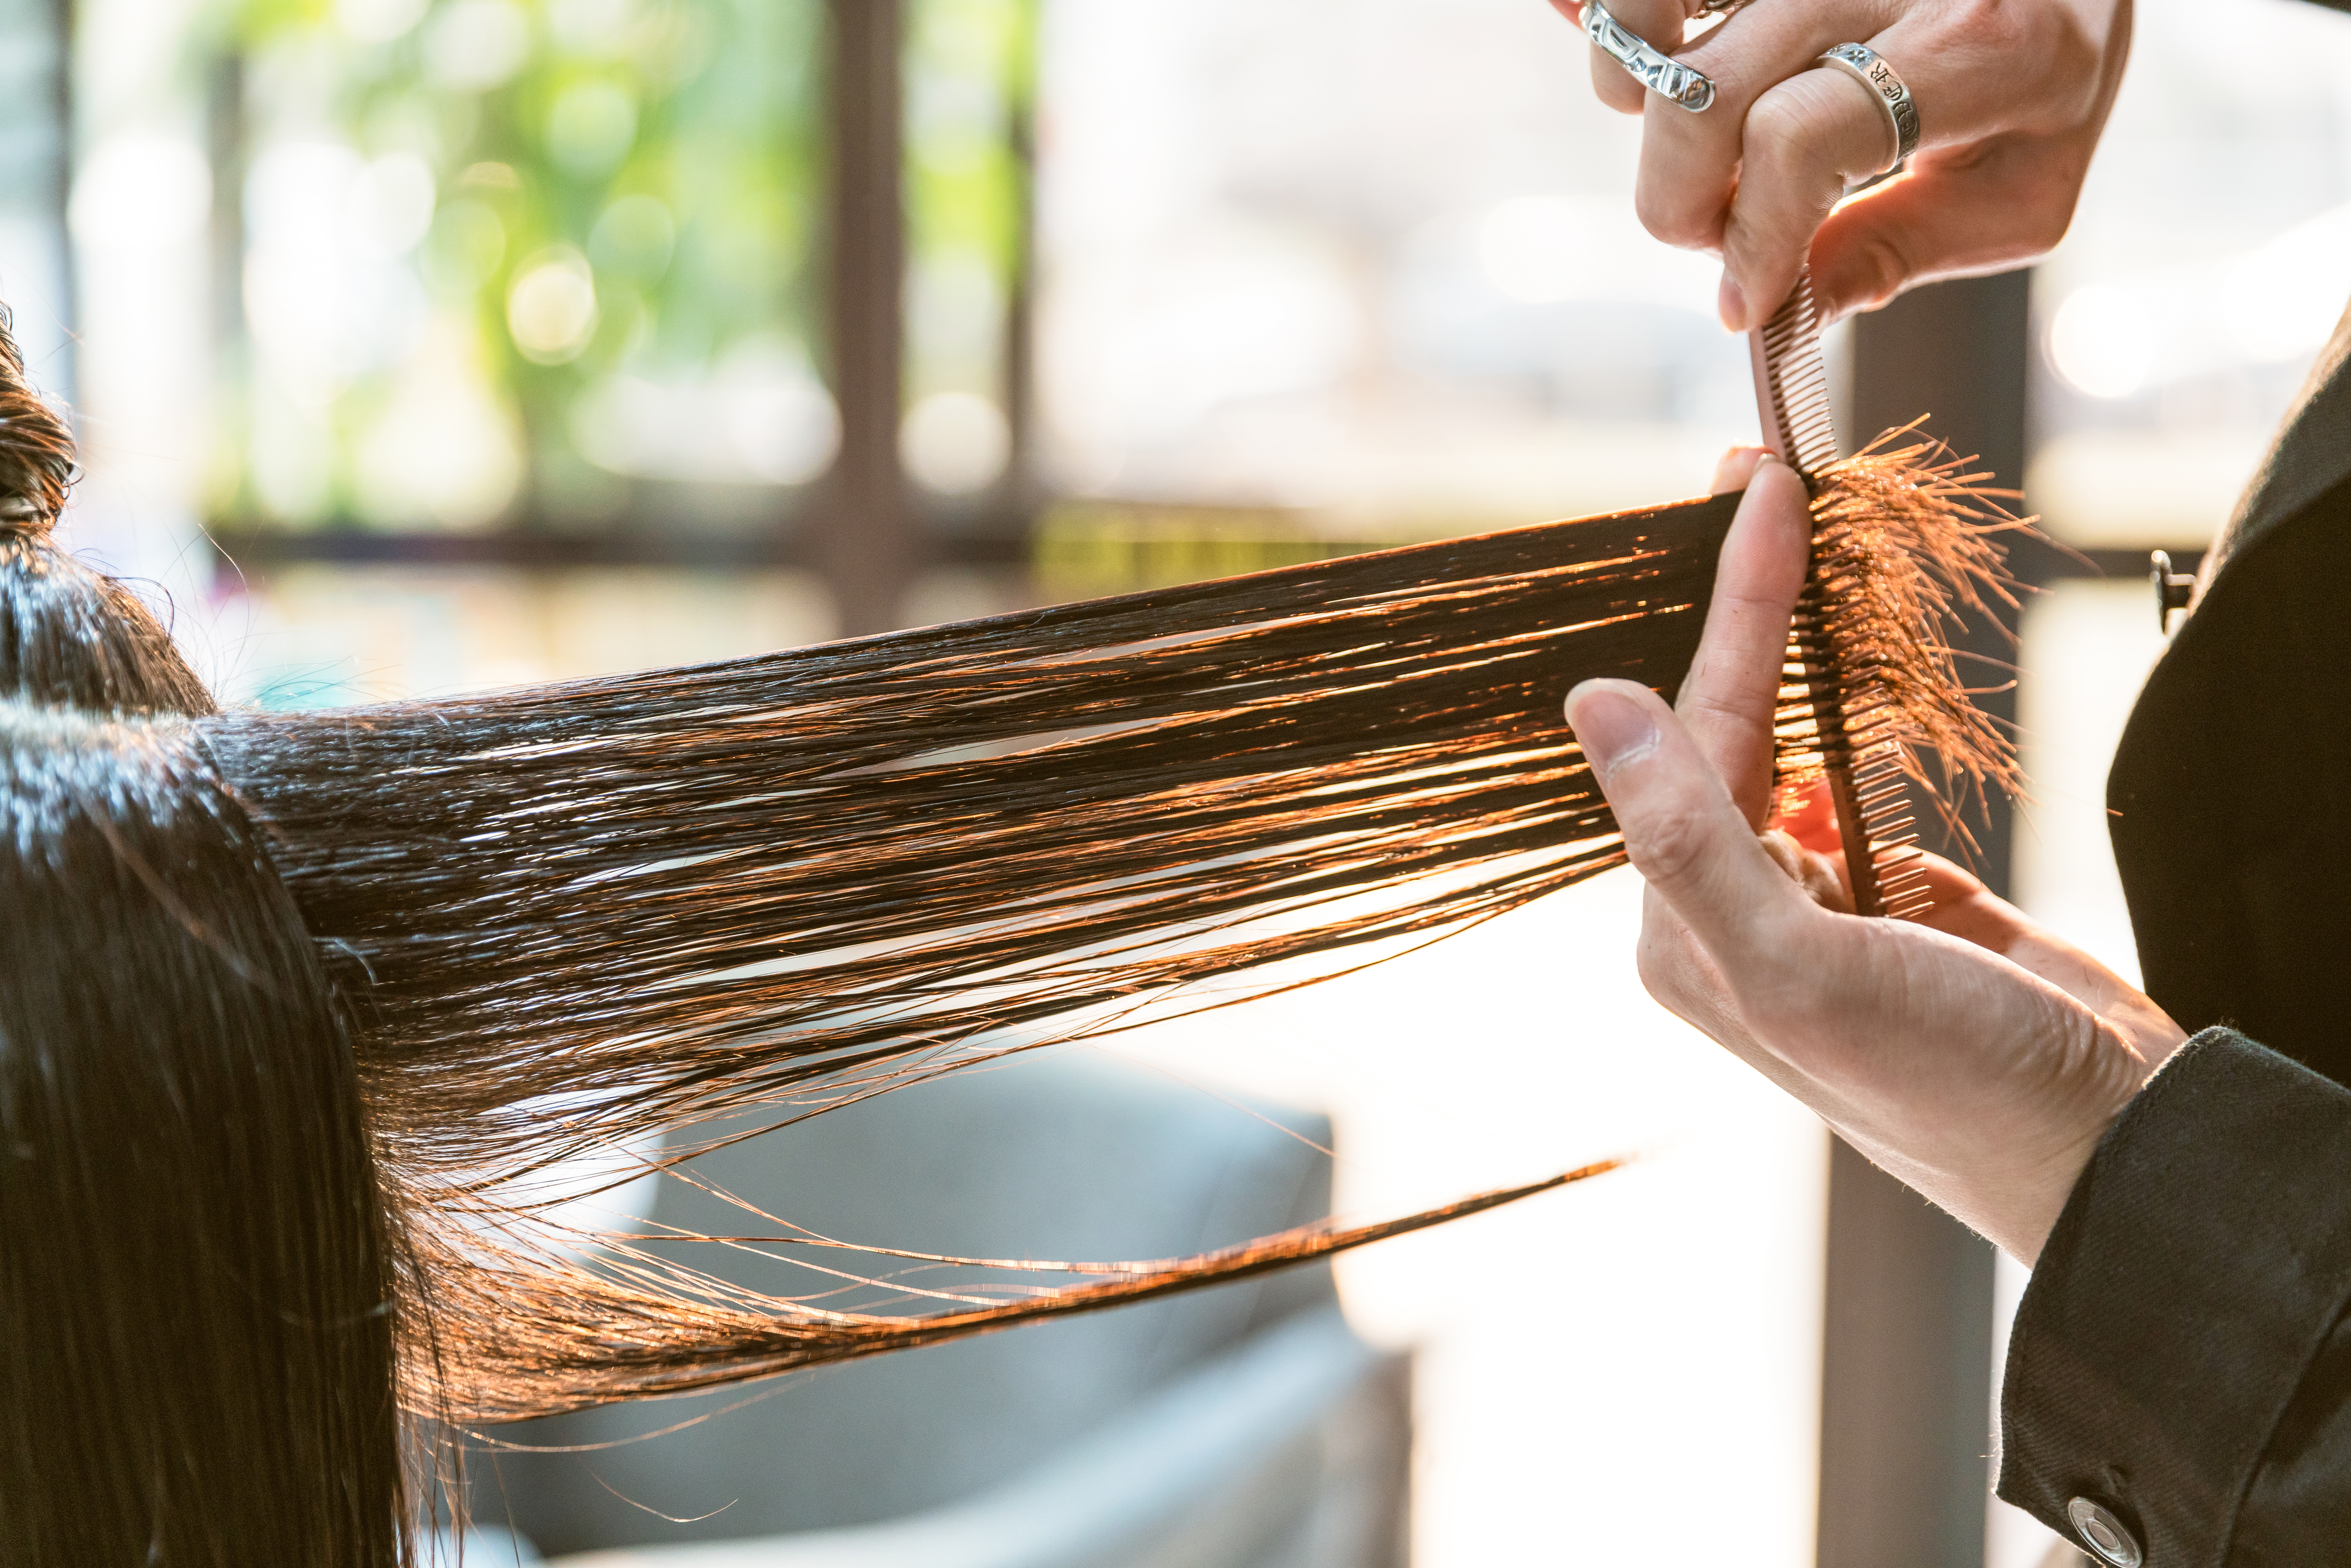 Self Employment Tax Deductions For Hair Stylists Chron